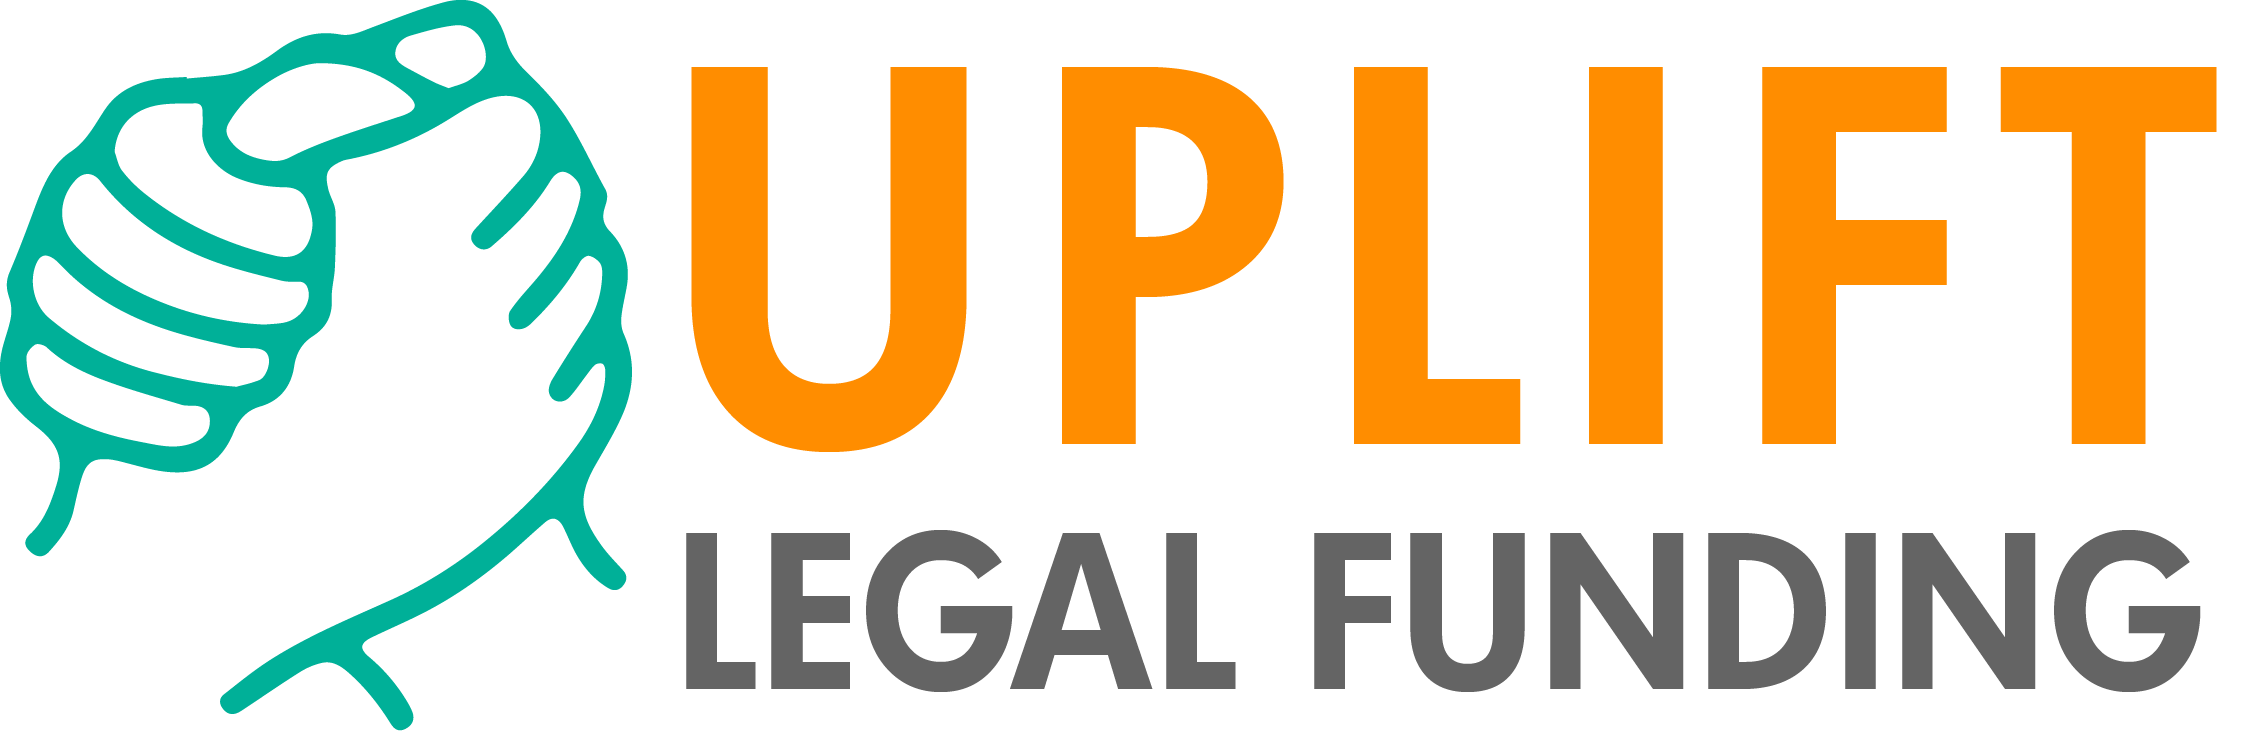 Funding for your lawsuit.